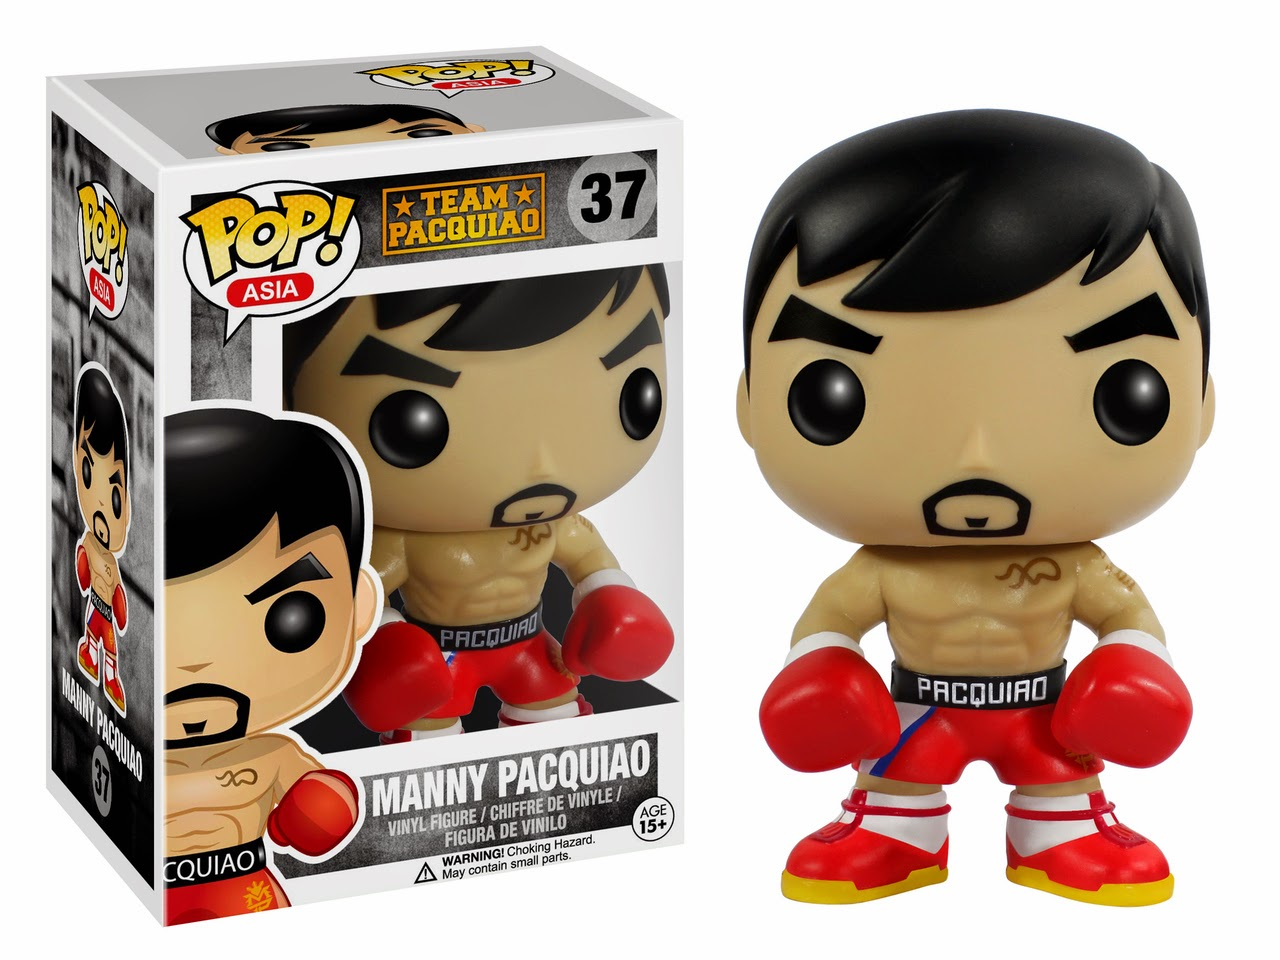 Manny Pacquiao Funko POP! Vinyl Figure glam shot